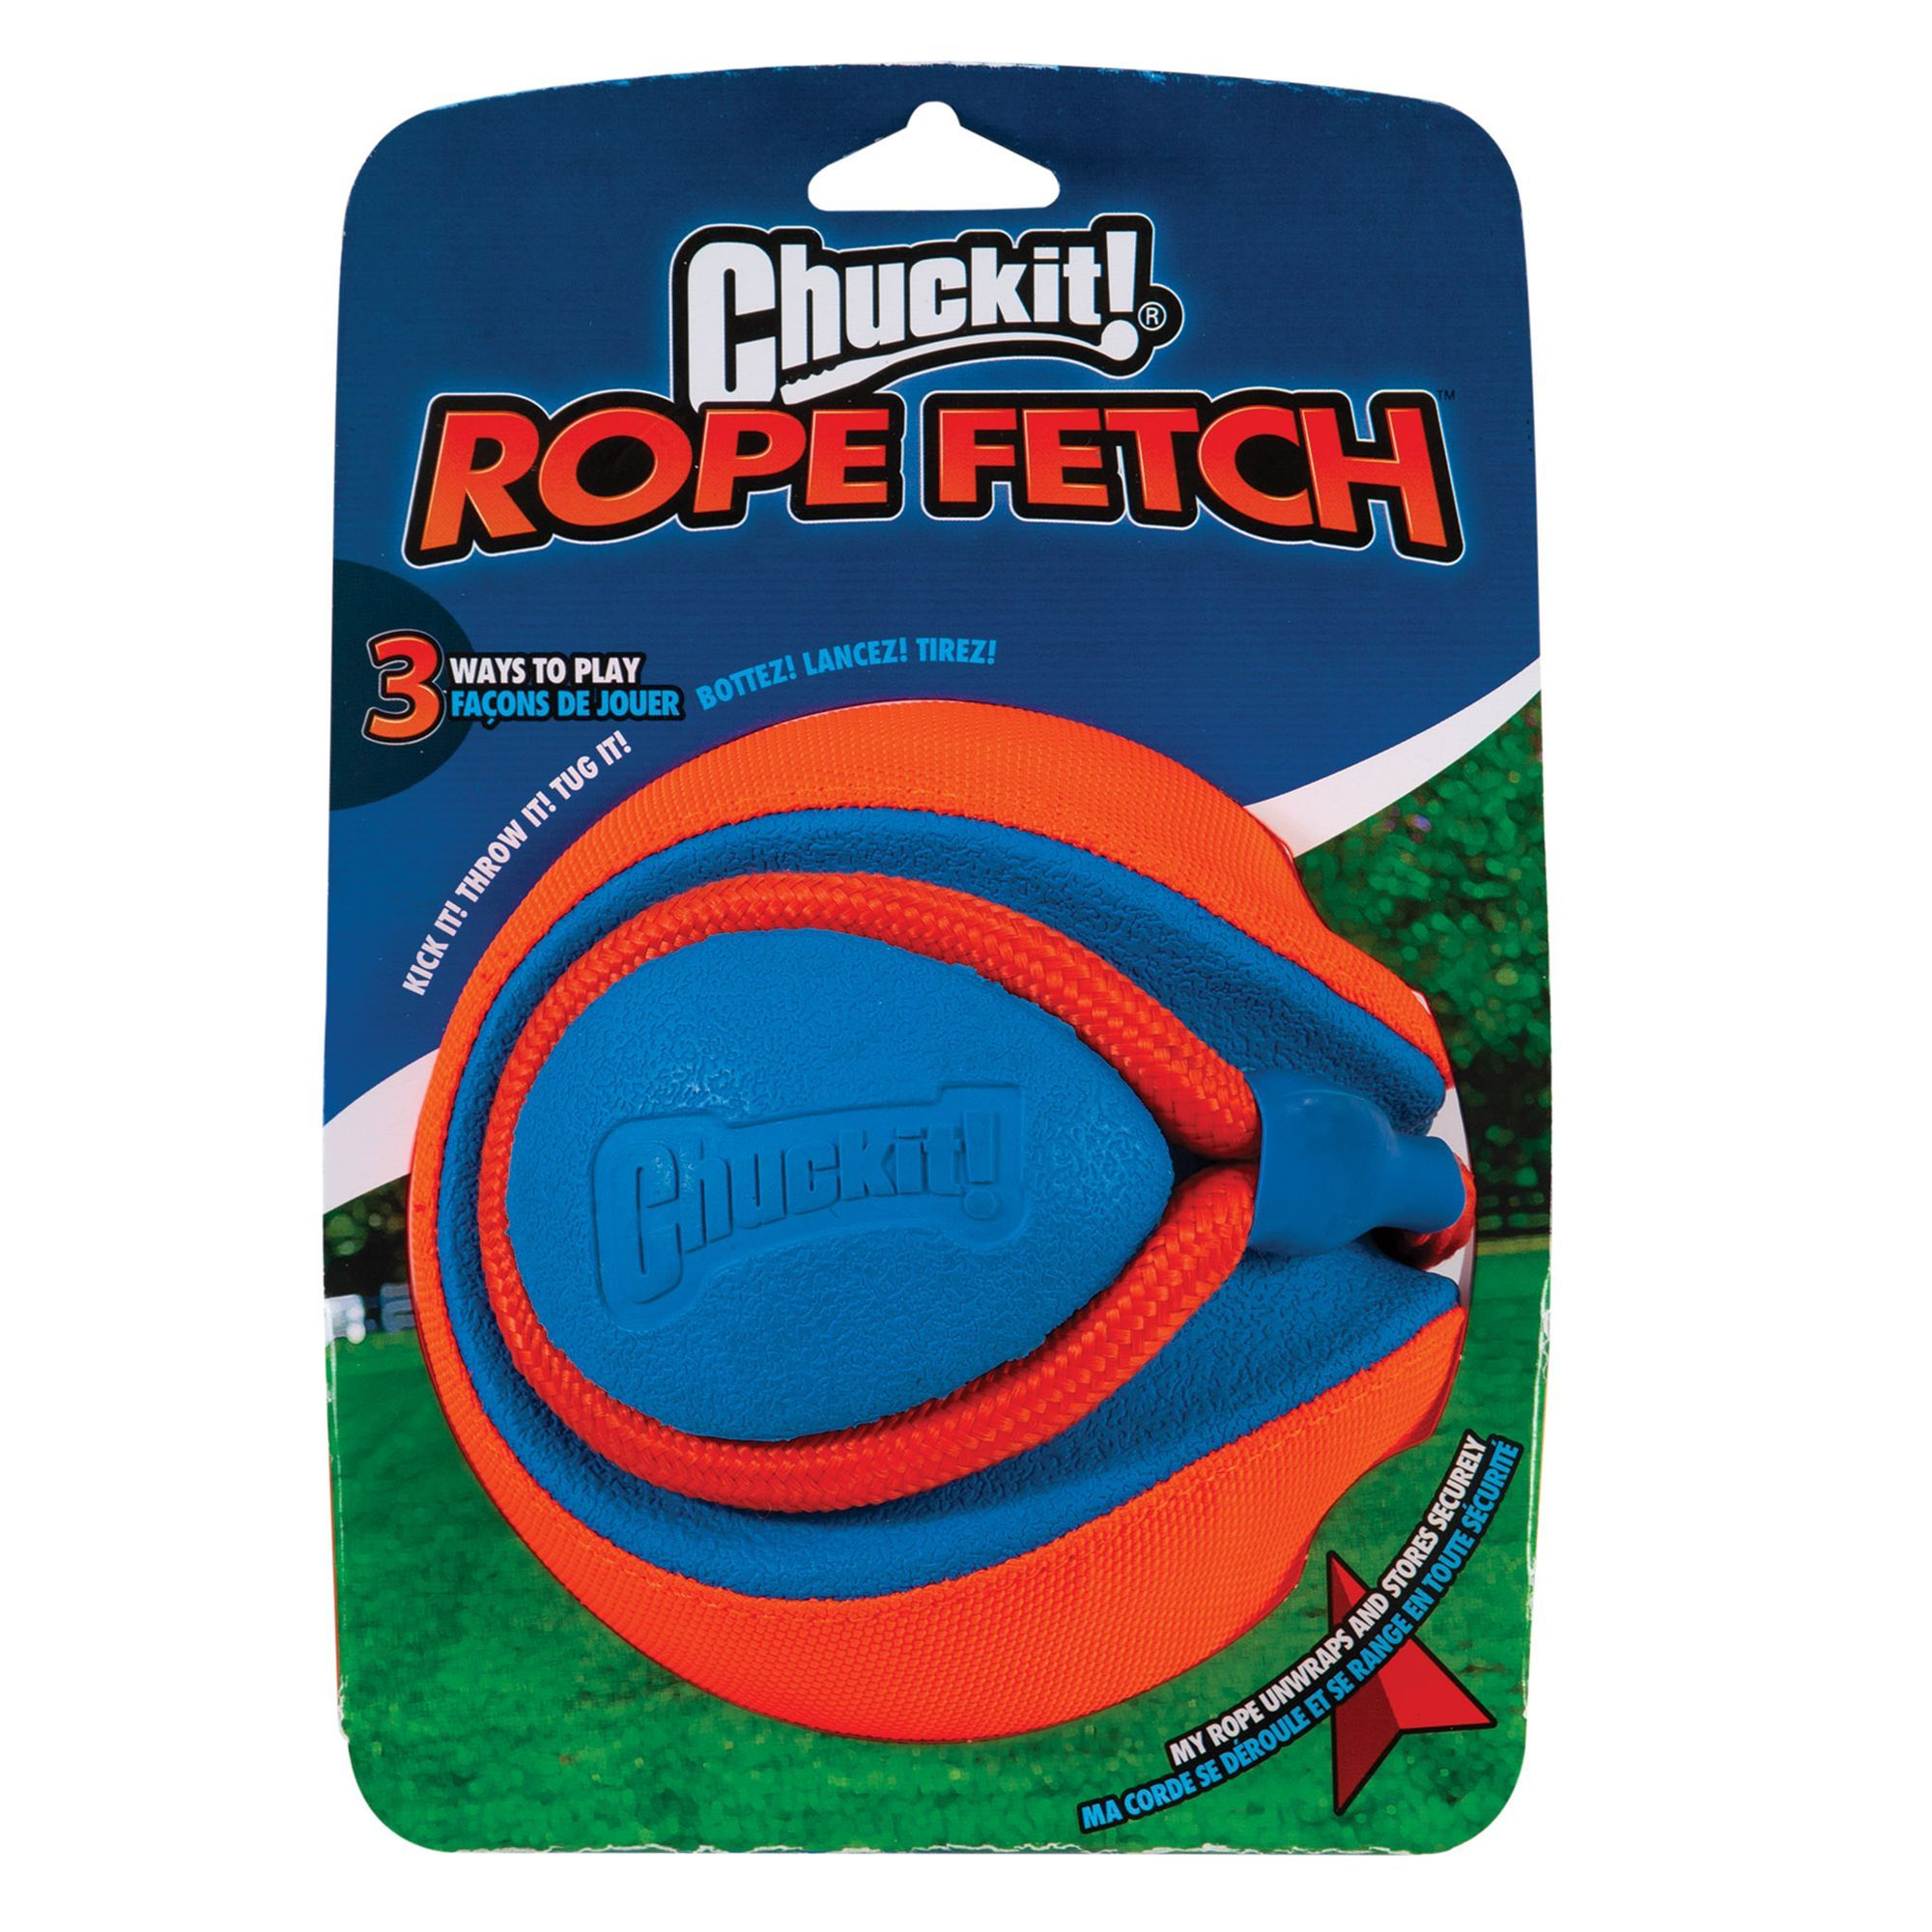 Chuckit Rope Fetch Dog Toy In 2019 Products Dog Toys Toys Dogs